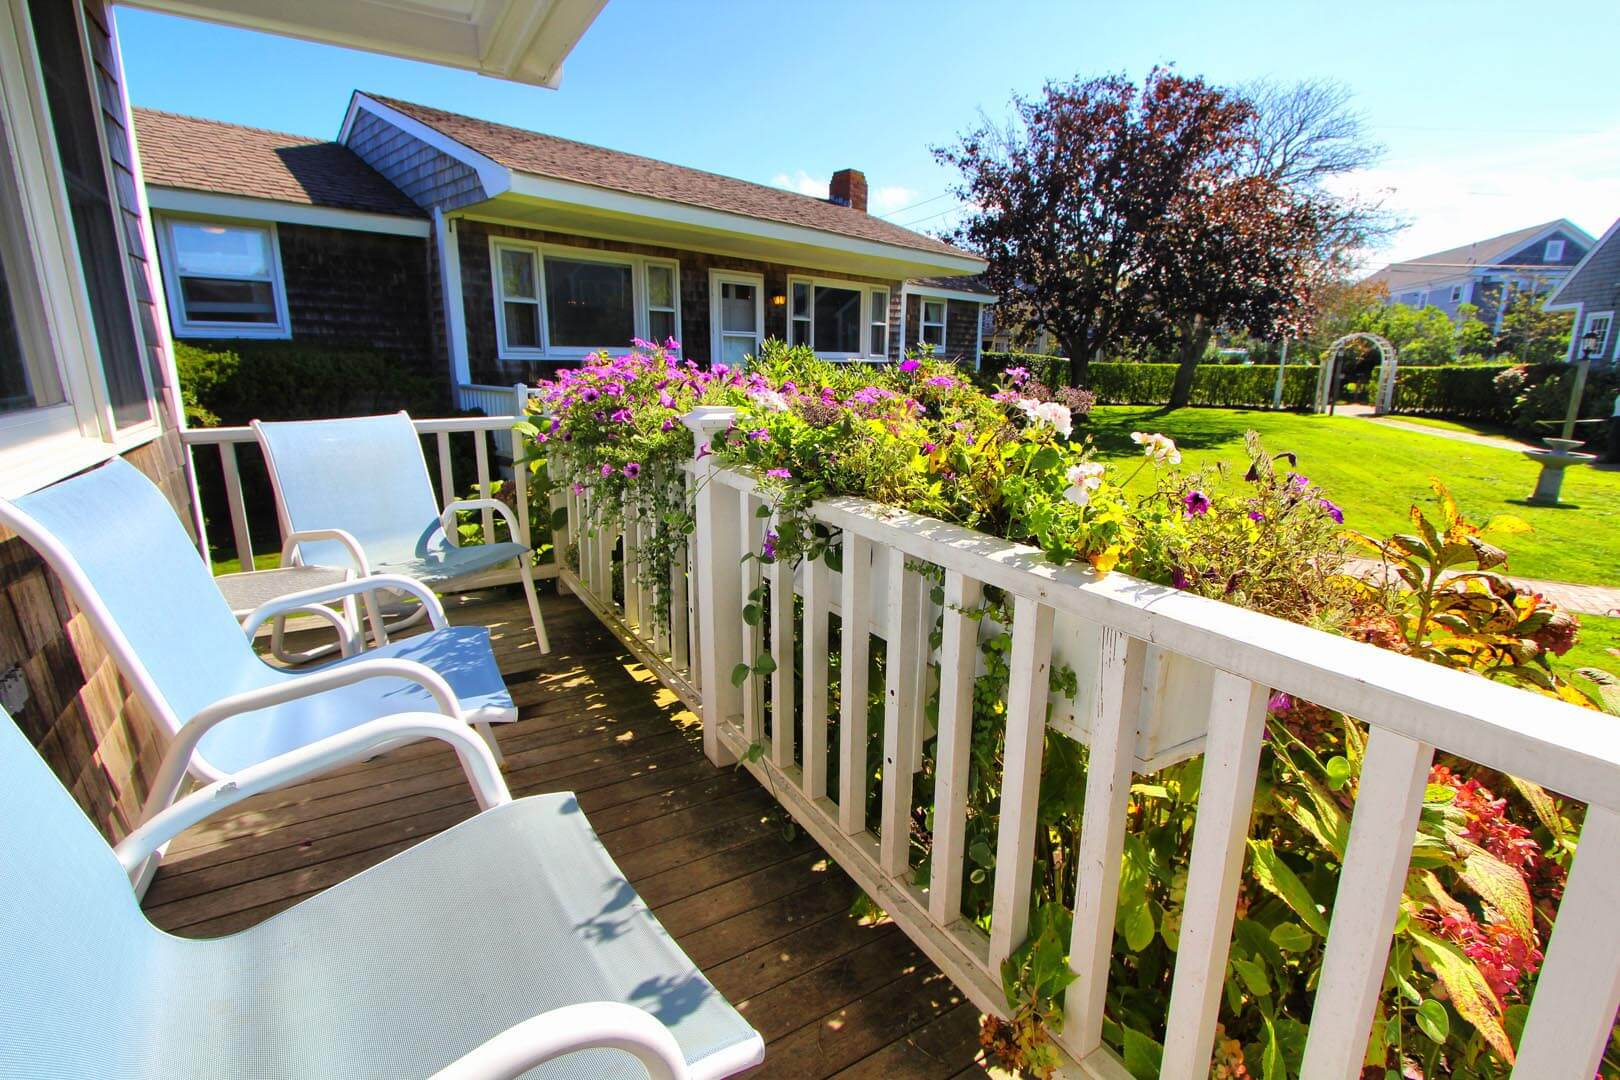 A relaxing view from the patio deck at VRI's Brant Point Courtyard in Massachusetts.